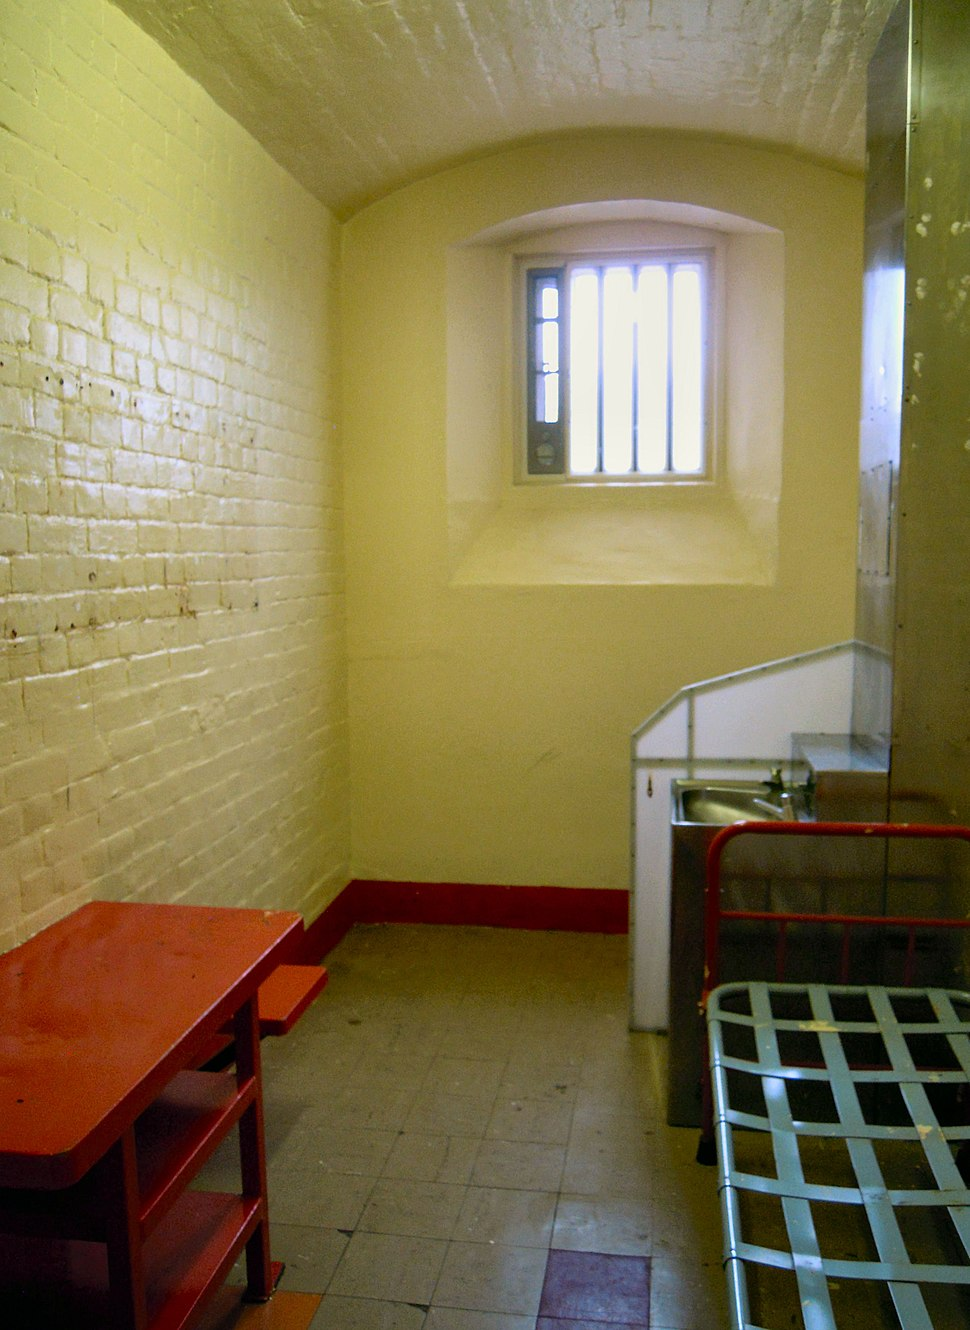 Oscar Wilde Prison Cell Reading 2016